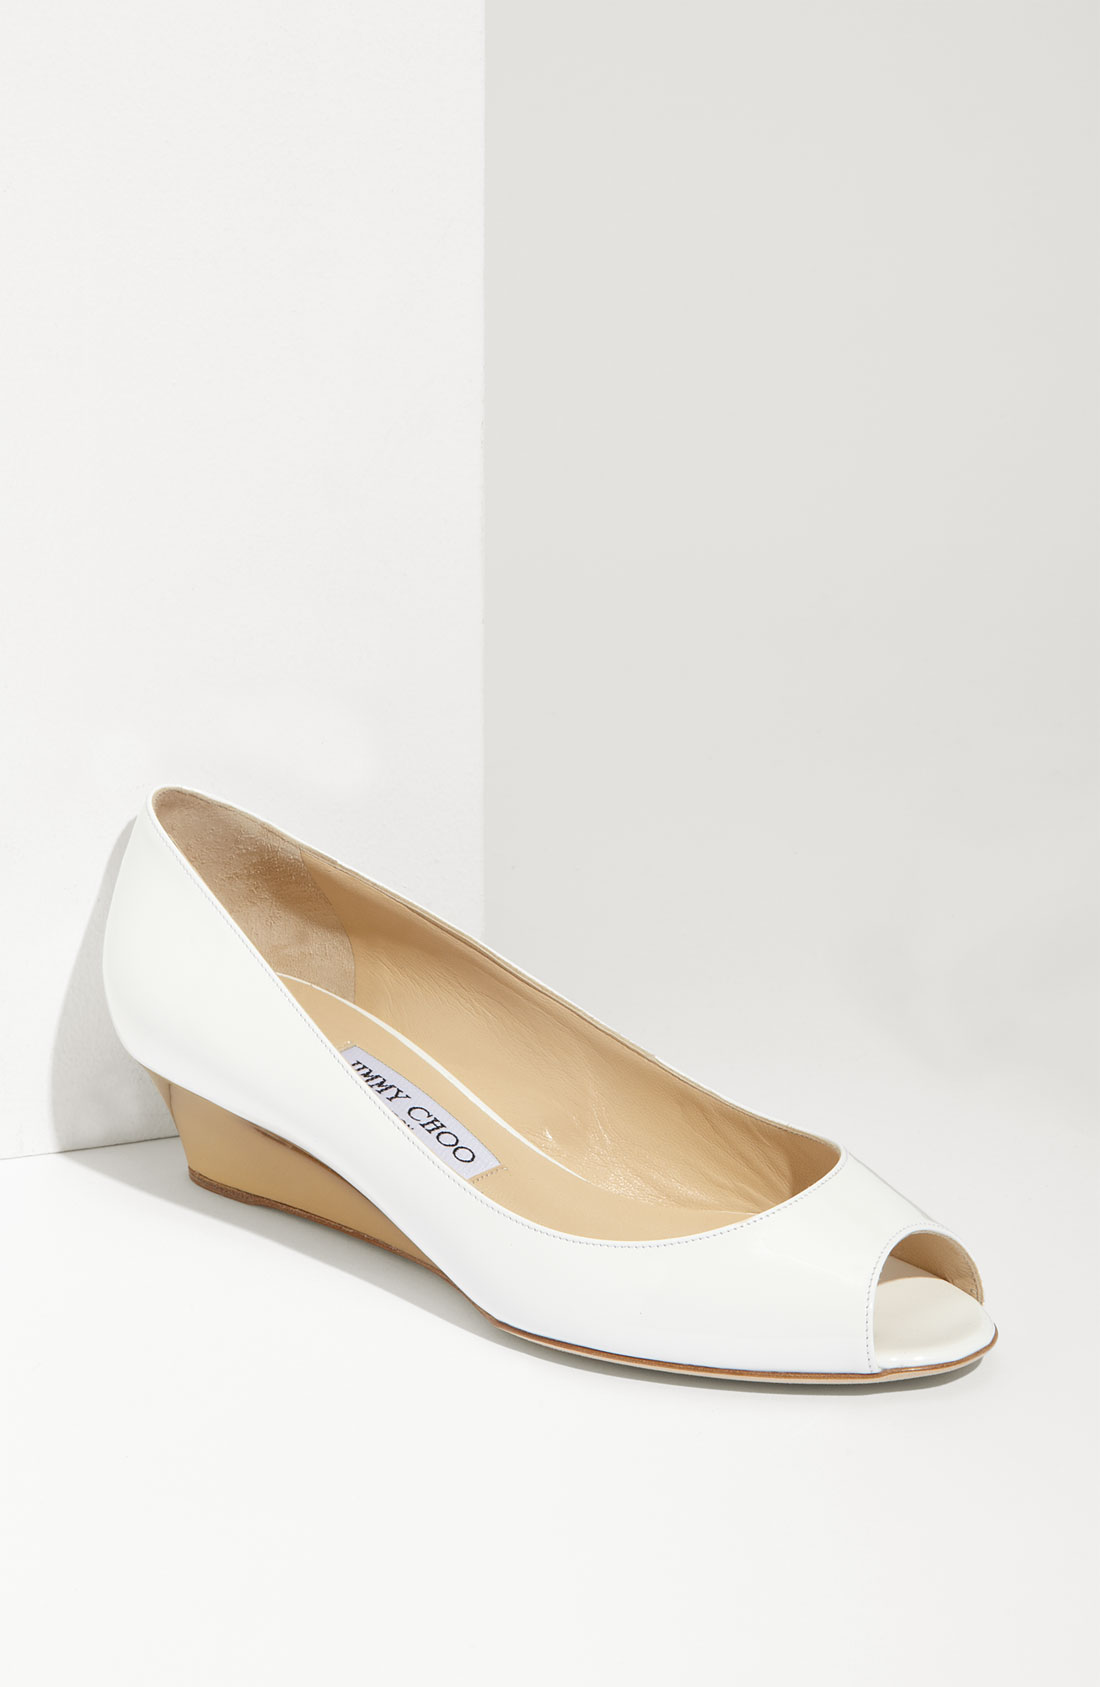 Browse David's Bridal collection of affordable wedding wedges in a variety of designs & colors including white, silver, gold, tan & more that you'll love!